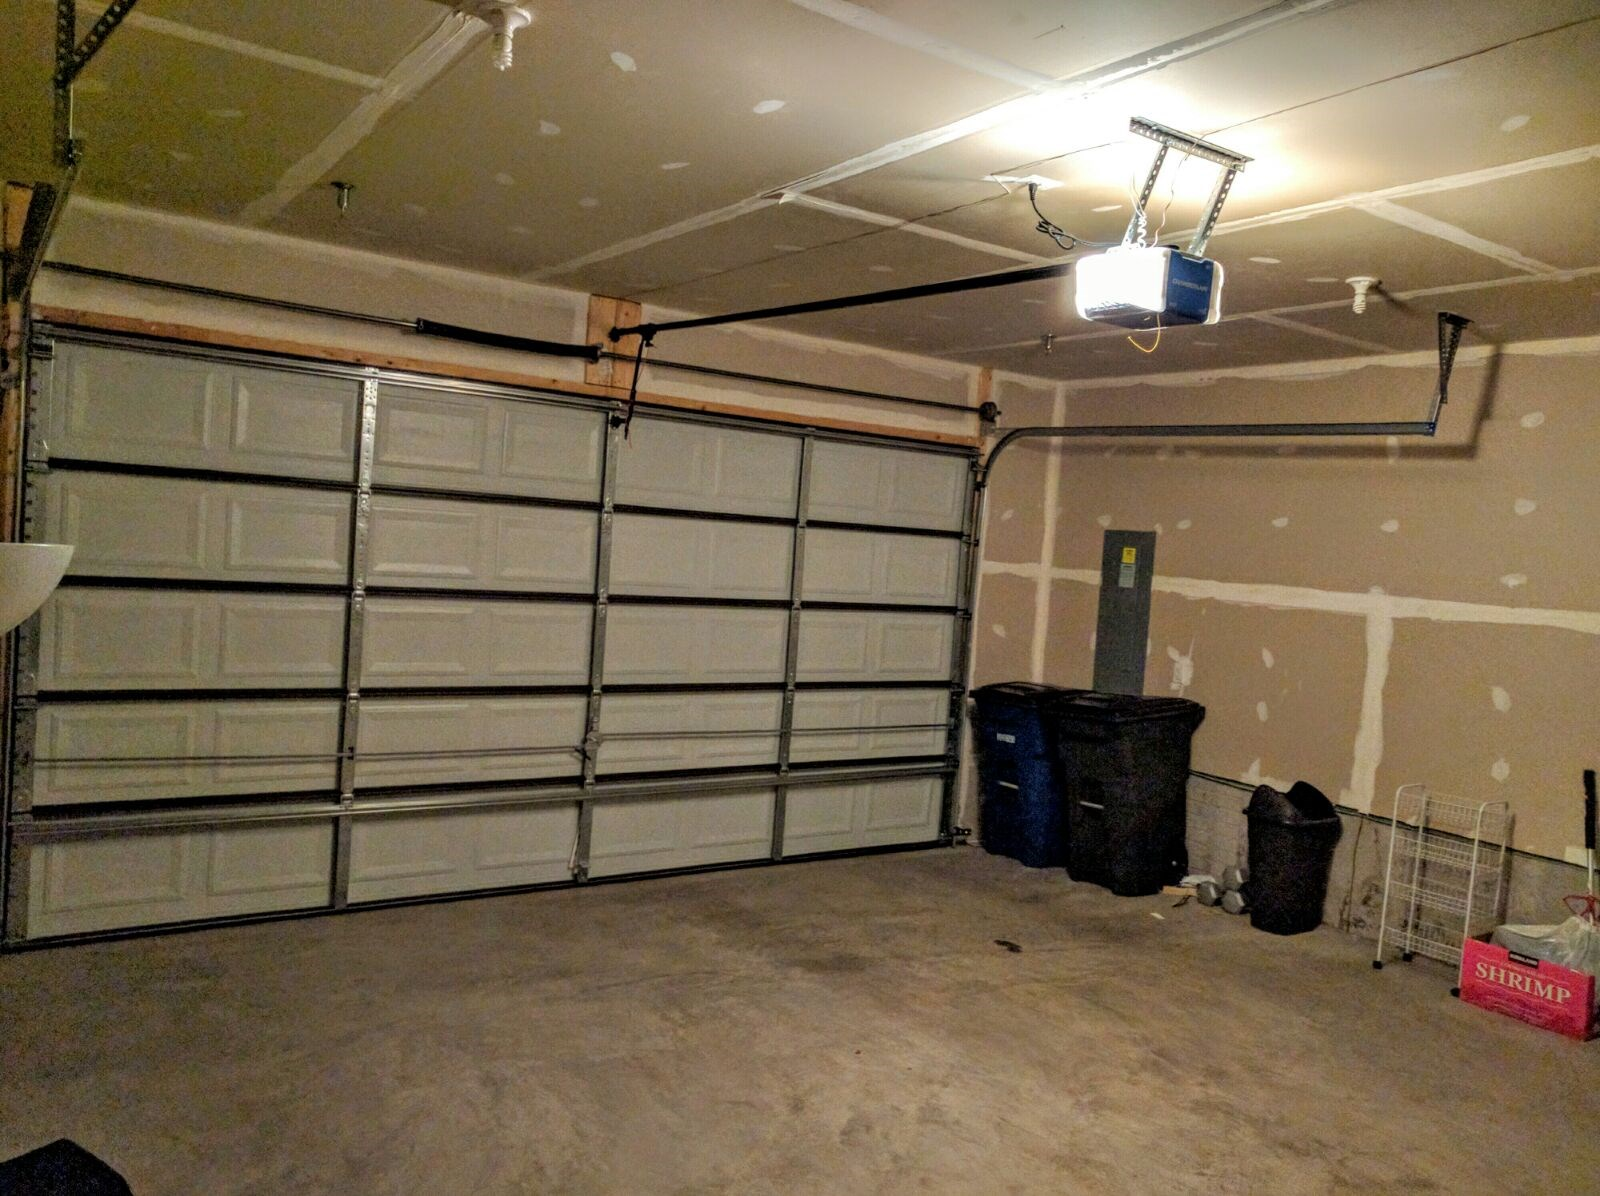 1 bed 1 bath basement available for rent in a town home